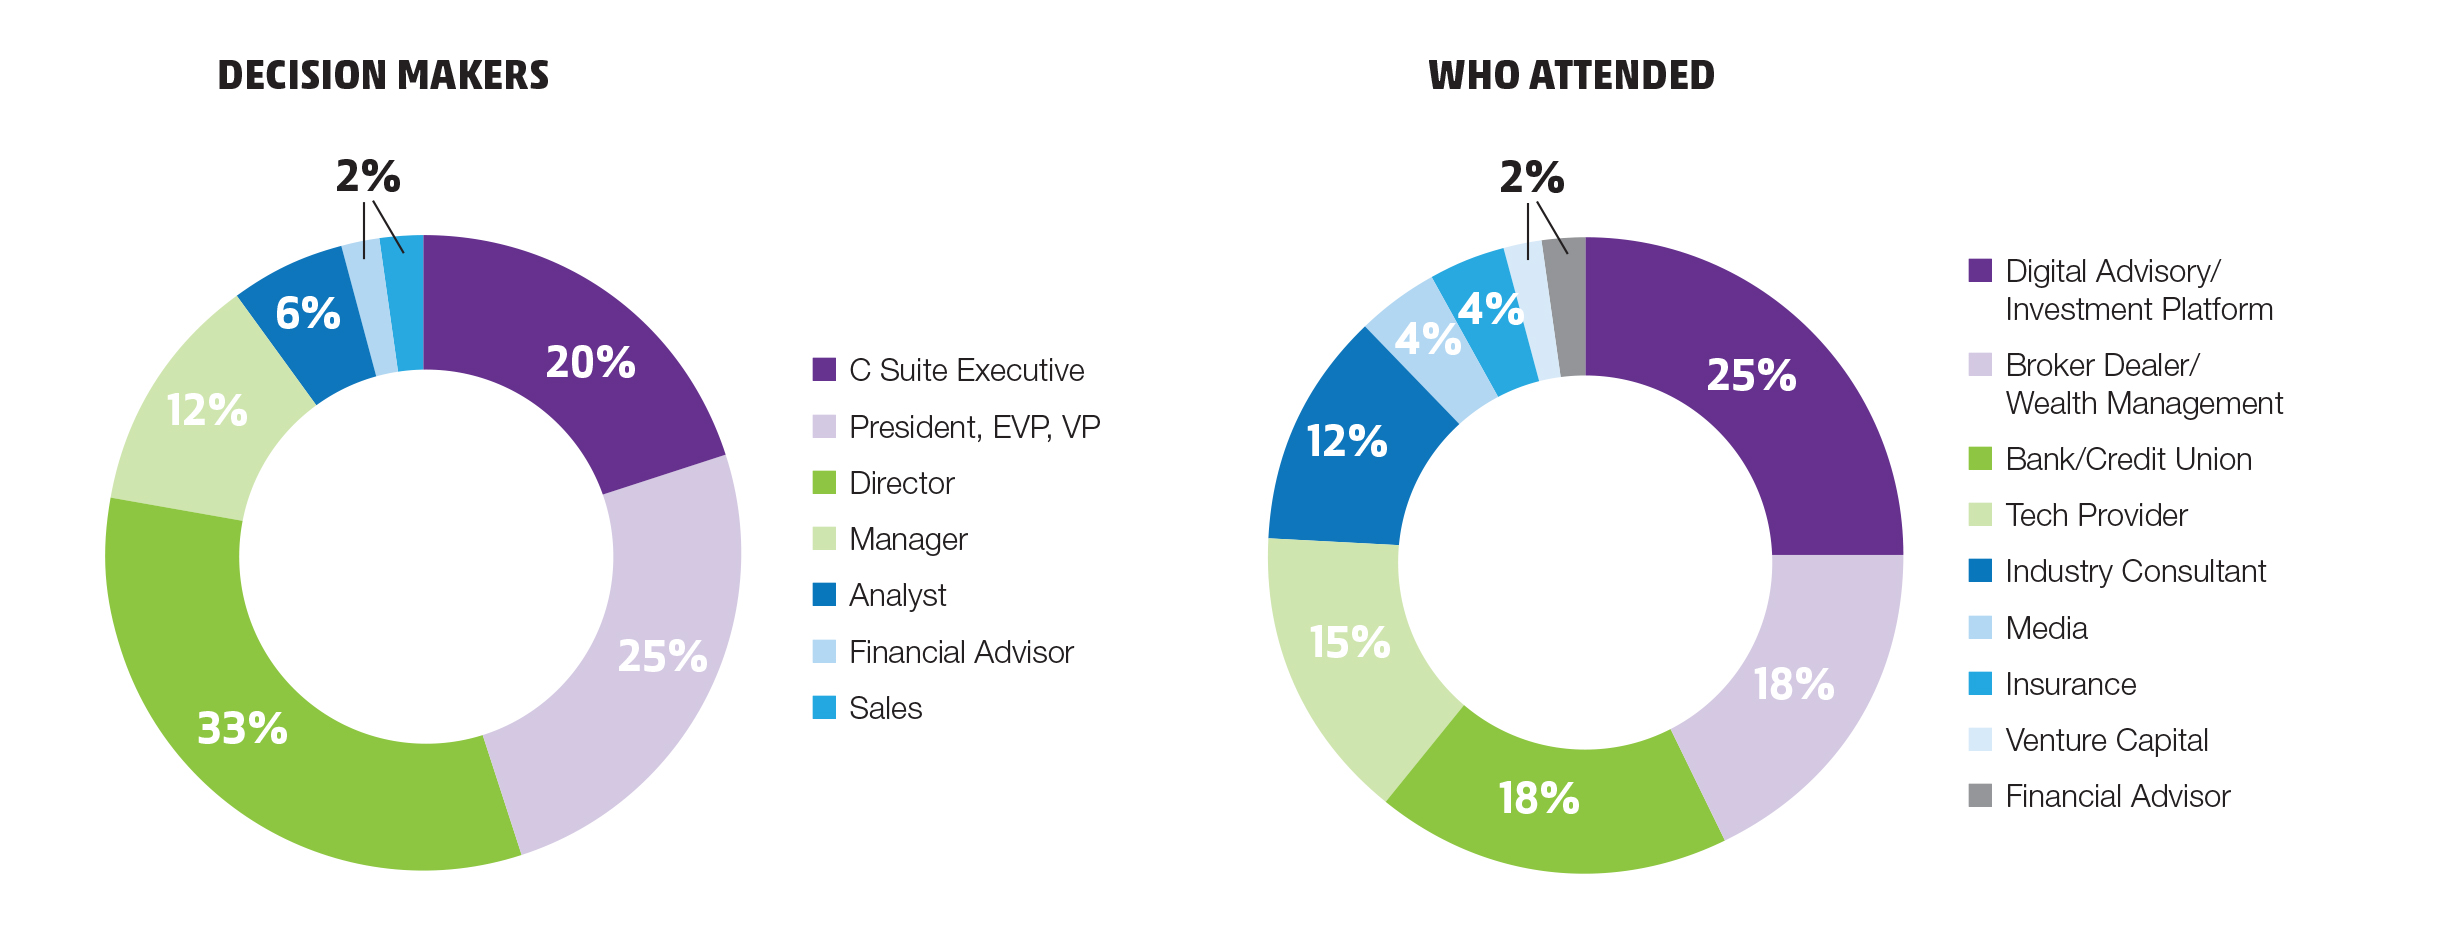 InVest18_Demographics-Attendees